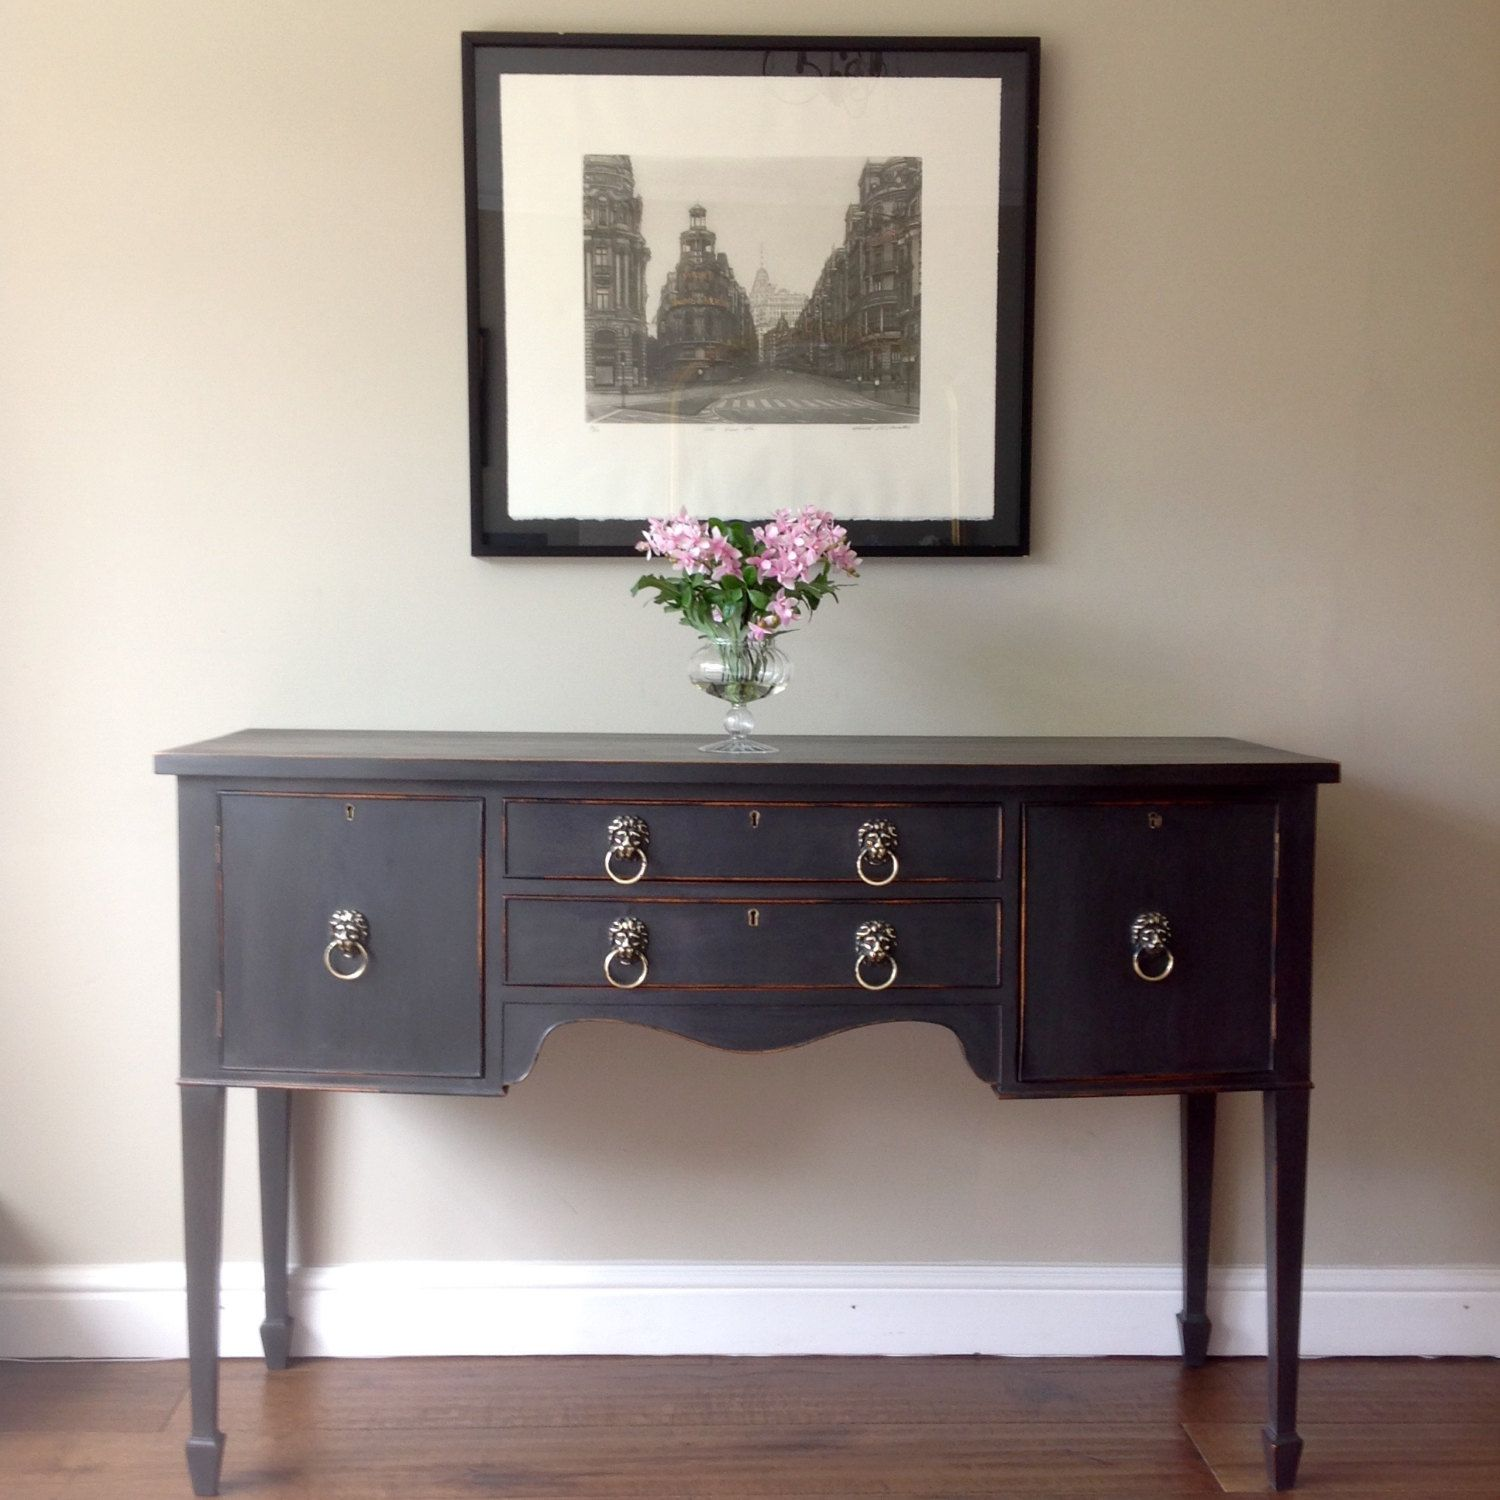 *NOW SOLD* Antique Style Vintage Hand Painted Annie Sloan Graphite Black  Sideboard Server Serpentine Console Table Hallway by ClyneCoFurniture on  Etsy - Antique Style Vintage Hand Painted Annie Sloan Graphite Black